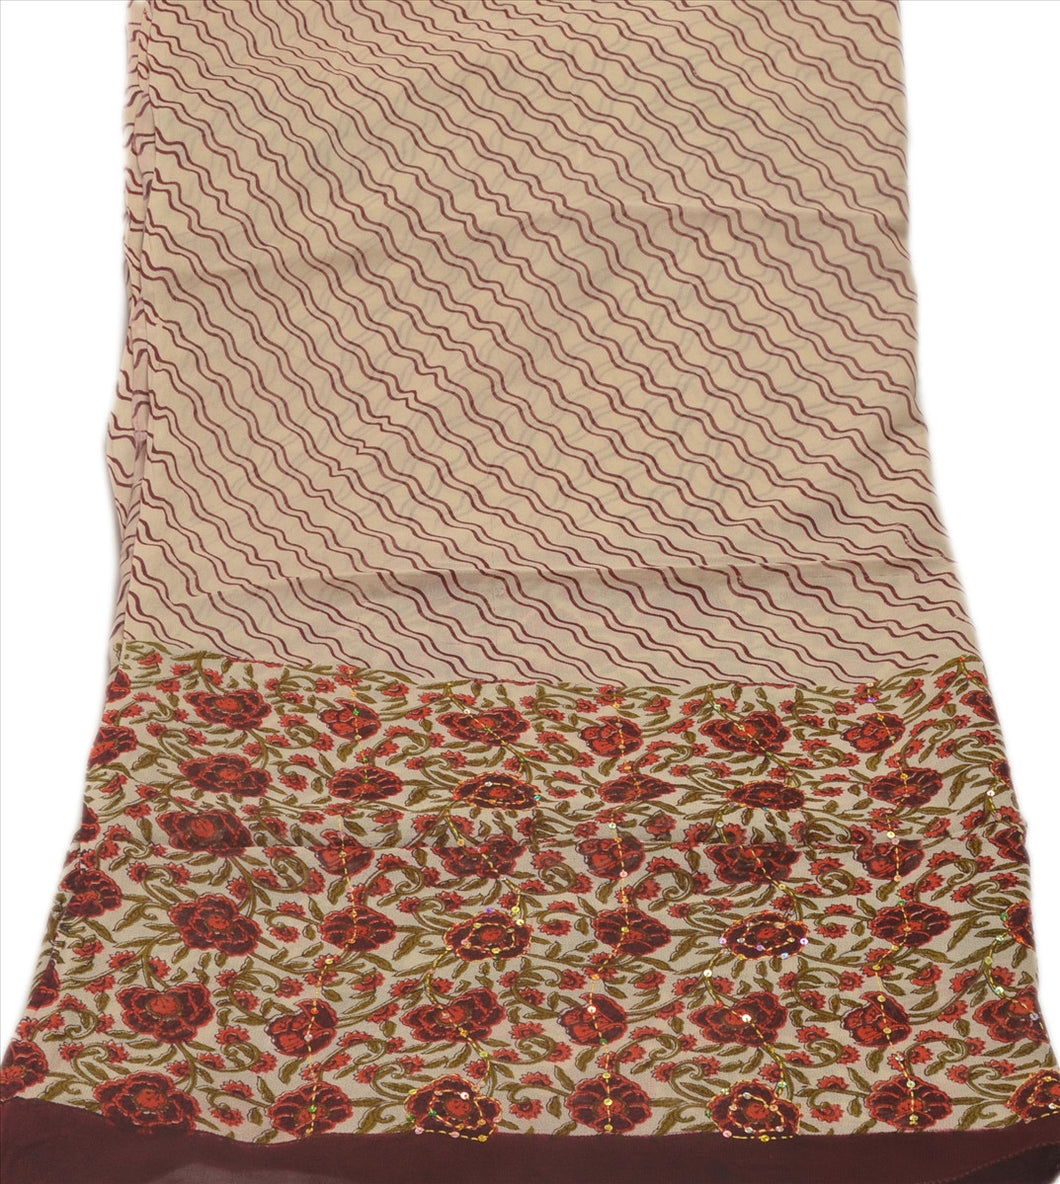 VINTAGE DUPATTA LONG SCARF GEORGETTE CREAM BROWN HAND EMBROIDERED KANTHA STOLE